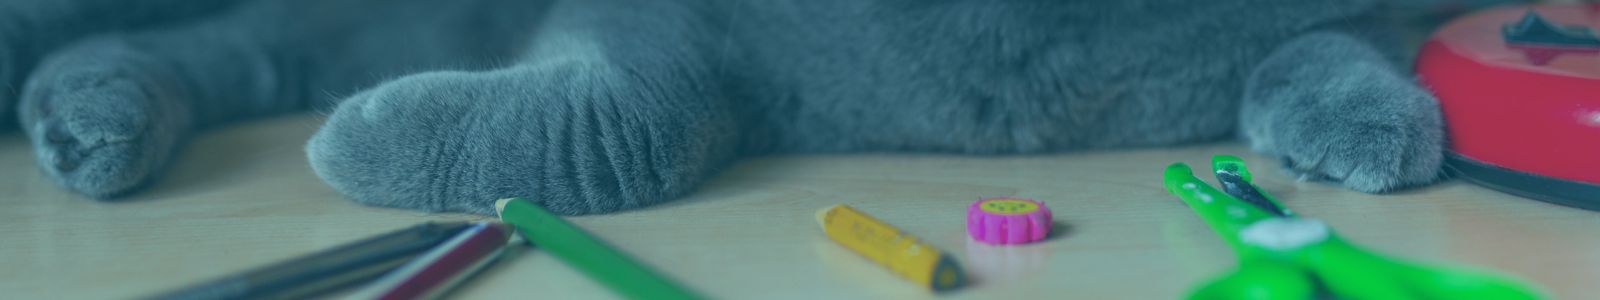 cat on desk with school supplies